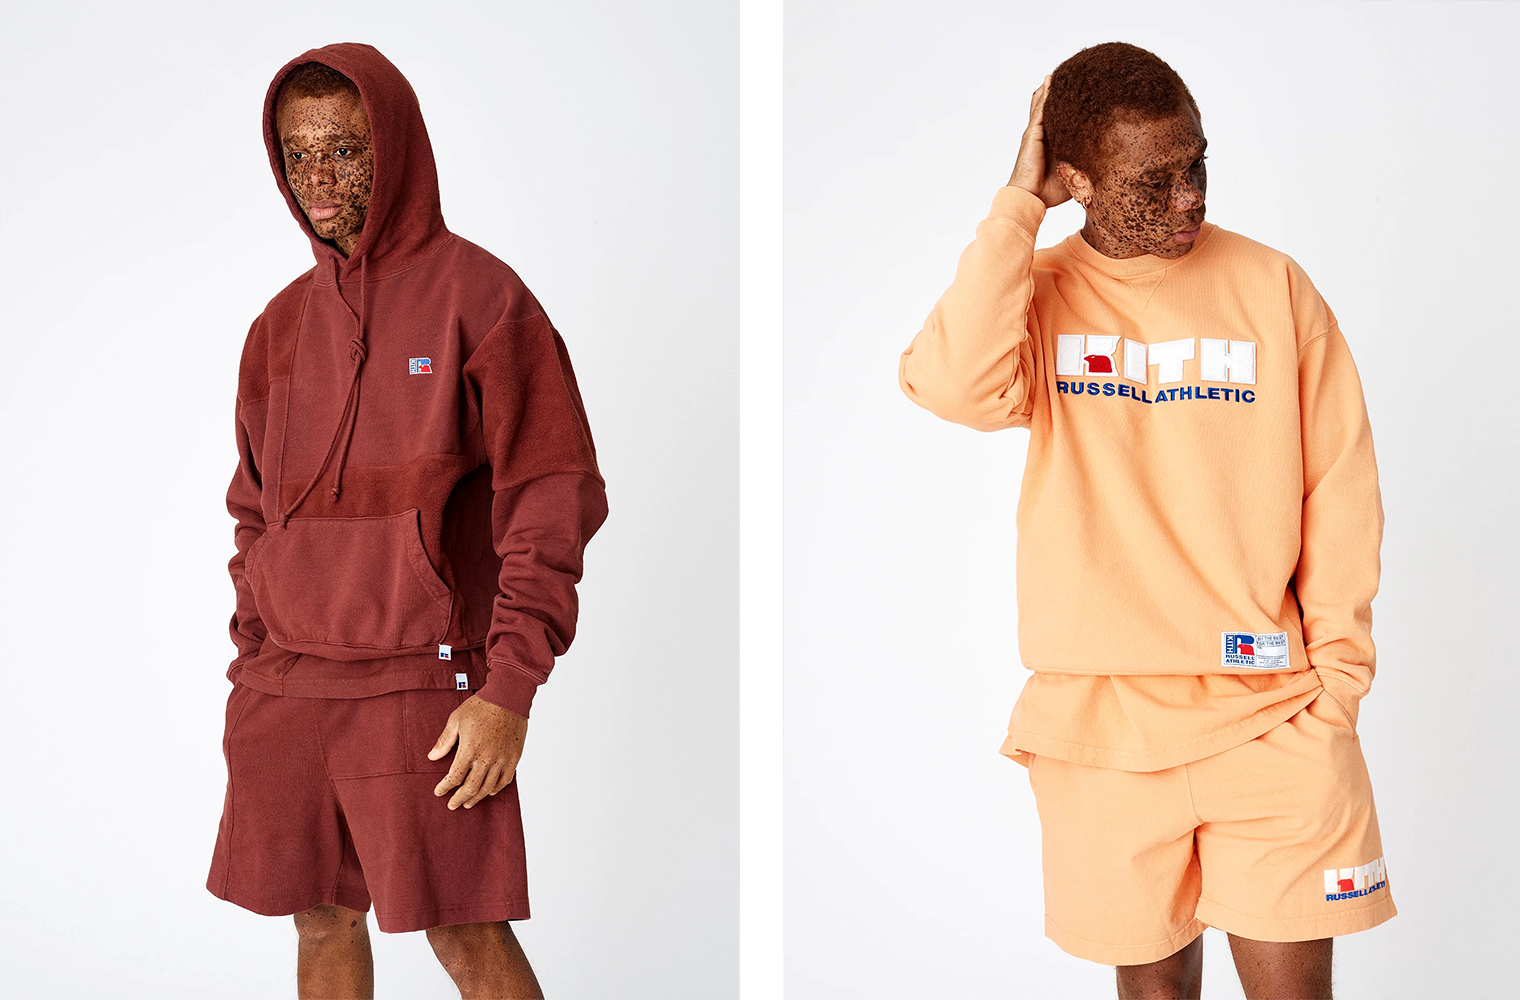 Kith x Russell Athletic Spring/Summer 2019